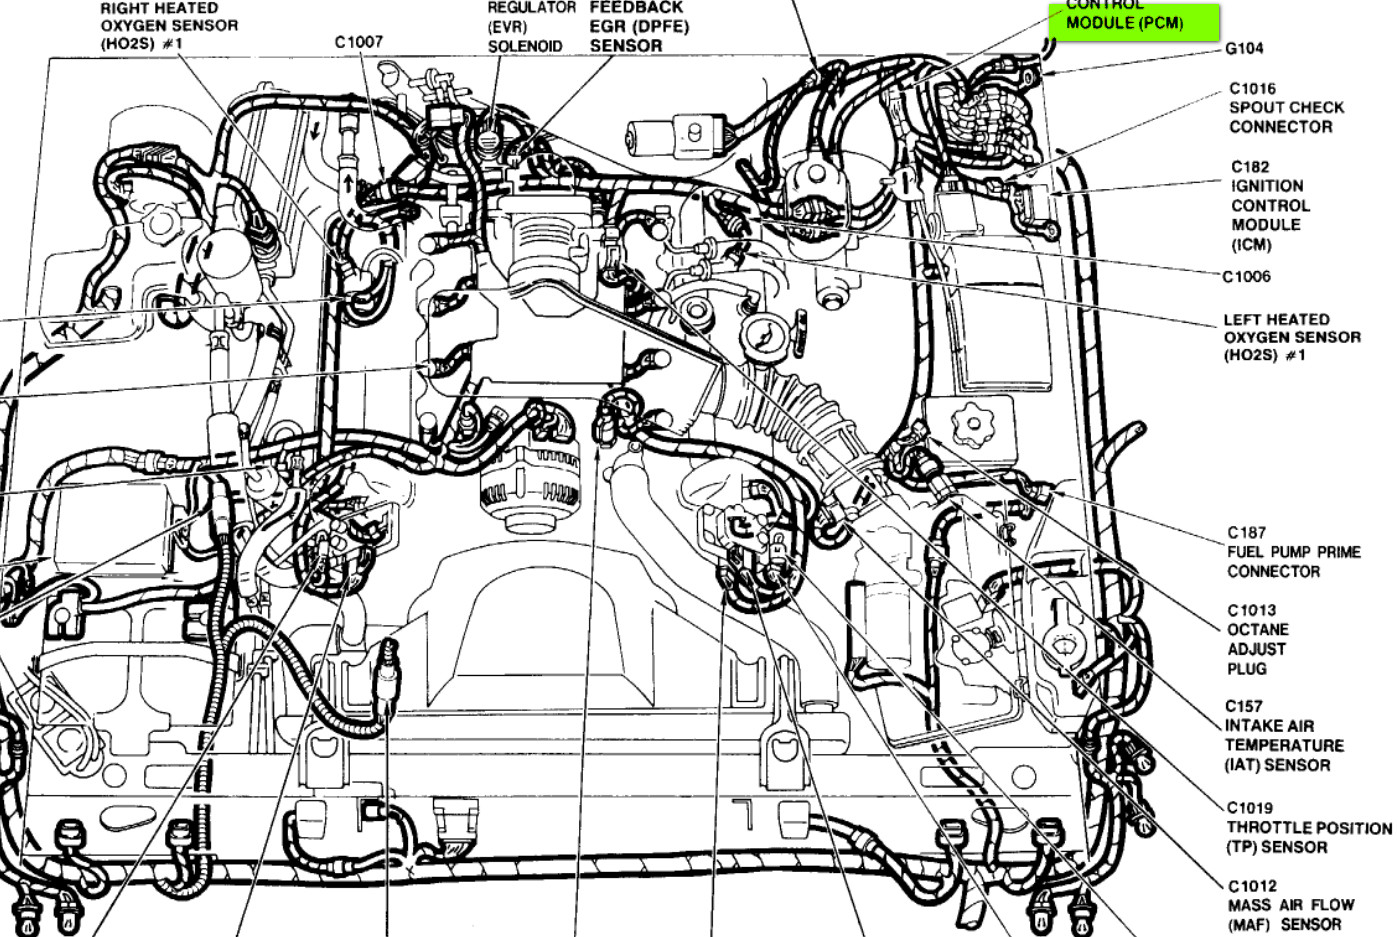 puter case wiring diagram with Iat Sensor Location Ford Taurus on Hp Pavilion Slimline Motherboard Wiring Diagram in addition Wiring  puter Hardware together with Atx Motherboard Sound Wiring Diagram as well Emachines Hard Drive Location together with Cas Module Bmw E90 Location.